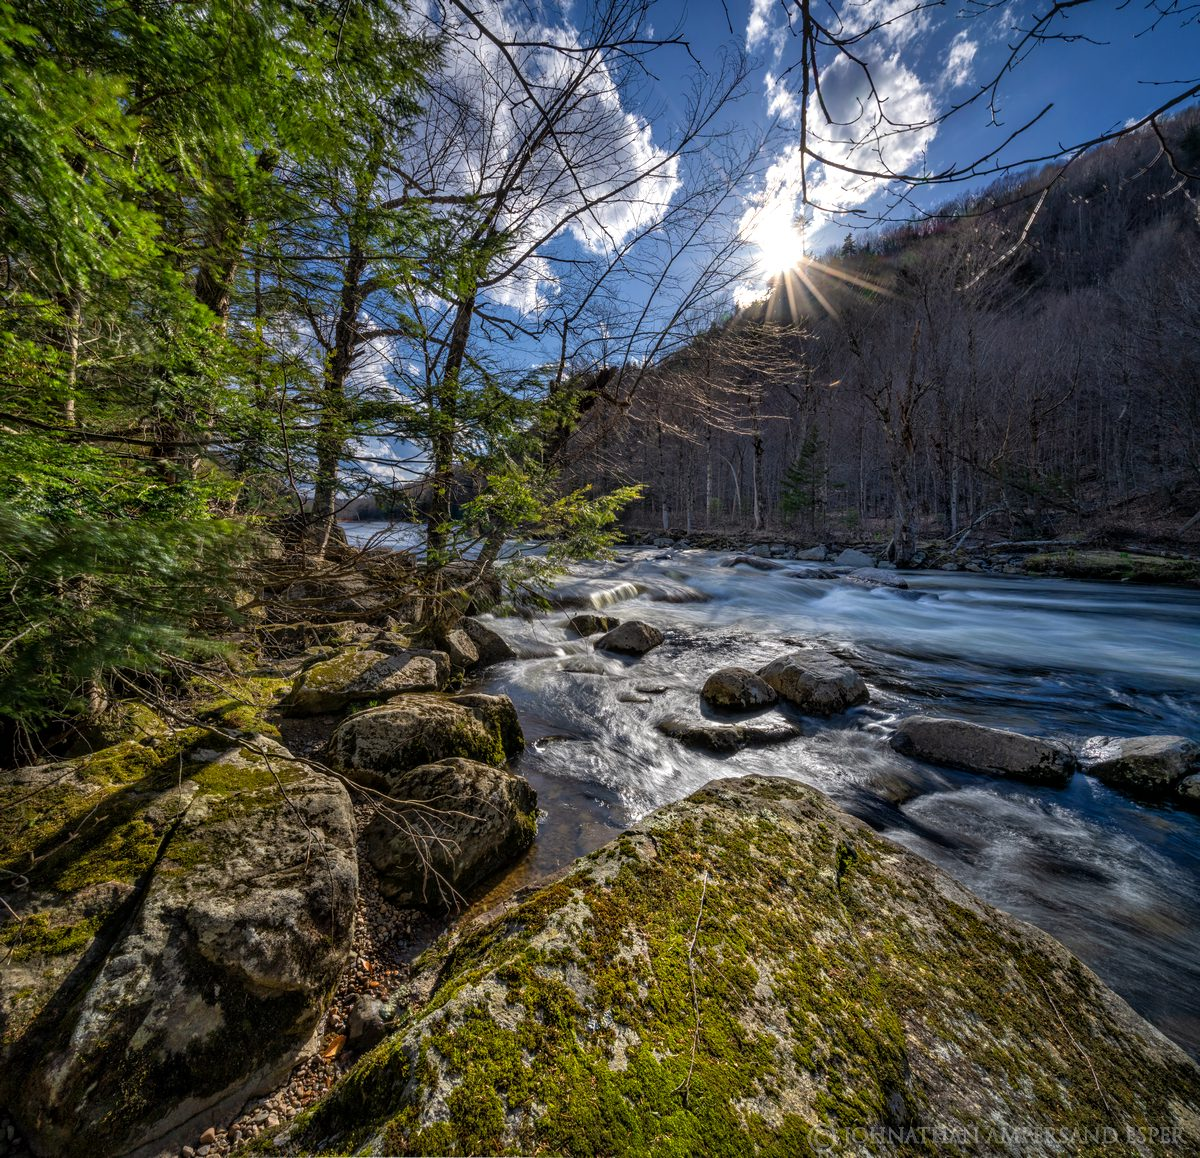 Ausable River,Wilmington Notch,spring,May,2020,square,sunny,river,rocks,moss, photo